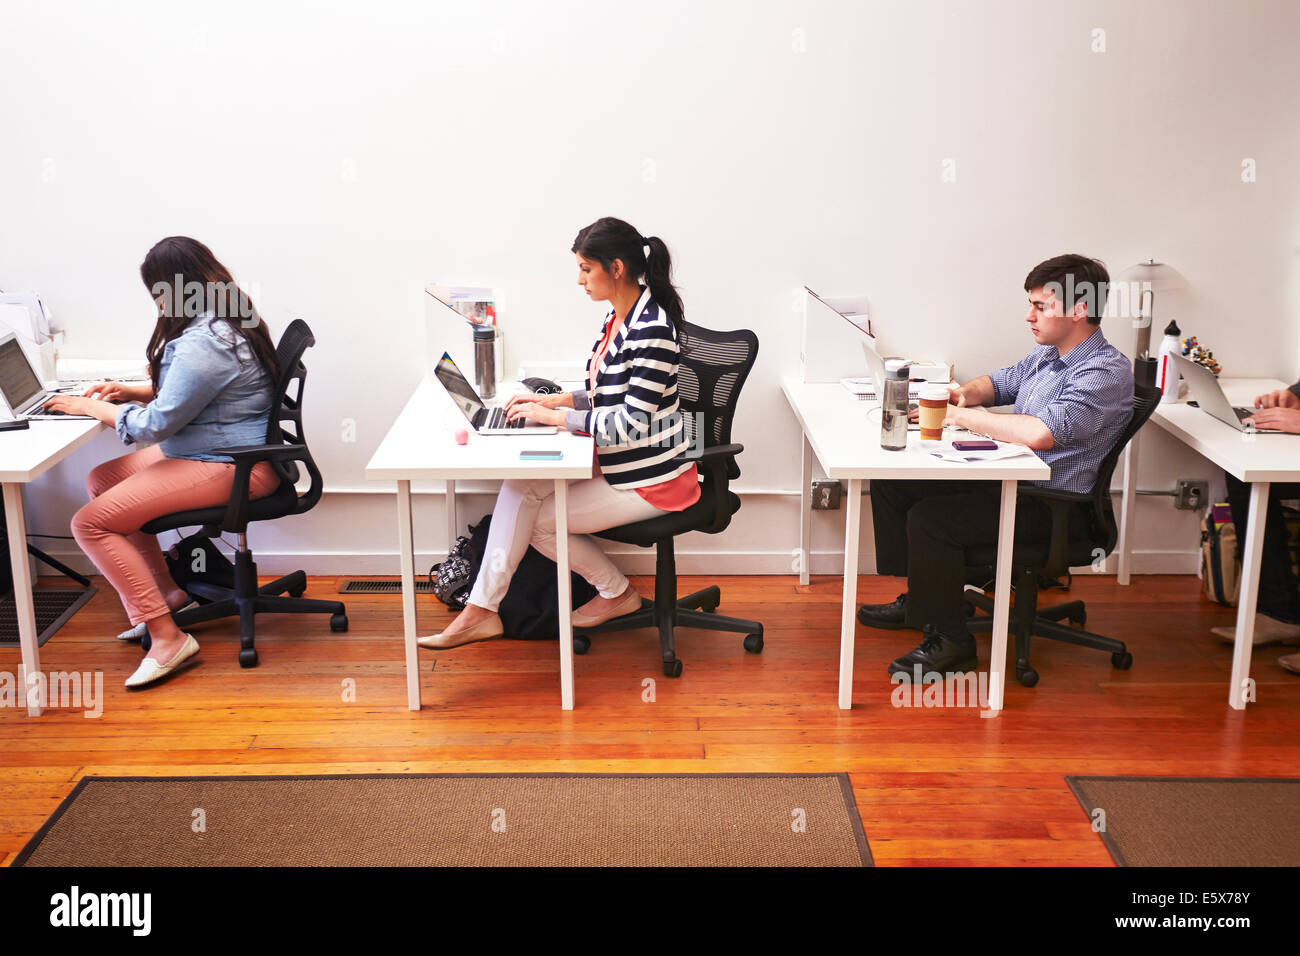 Row of people working at desks in office - Stock Image